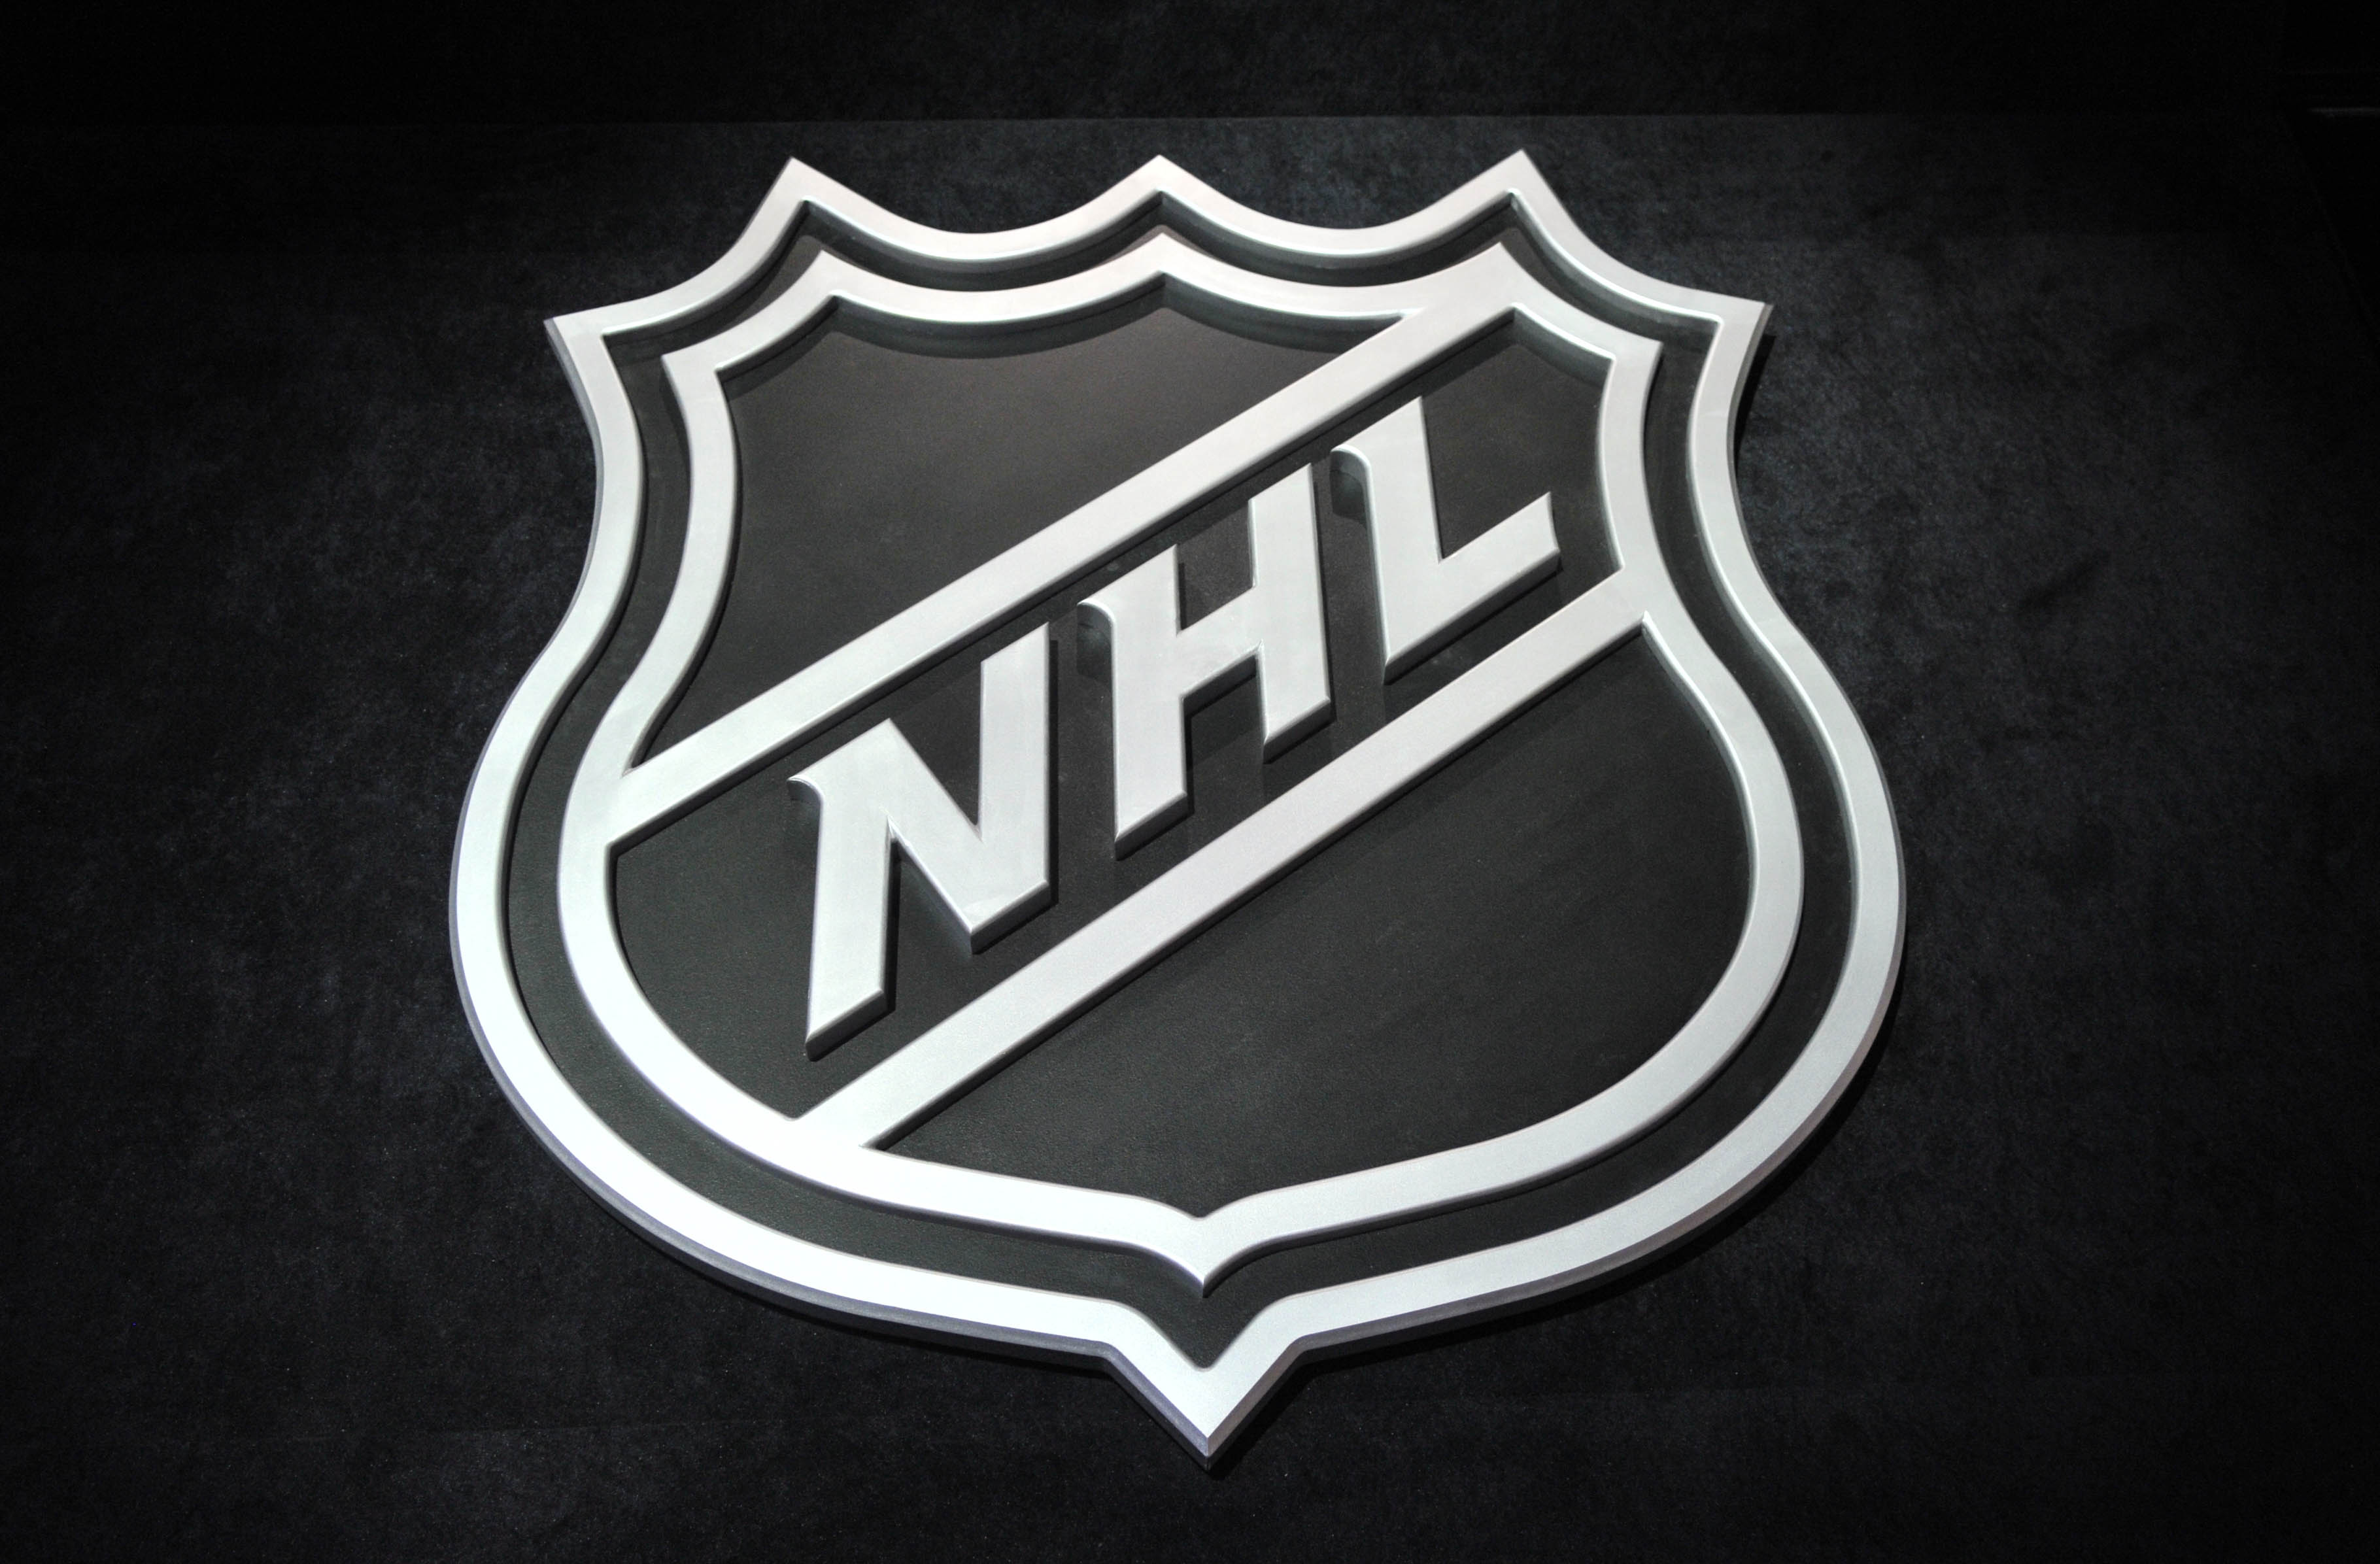 8668639-nhl-nhl-draft